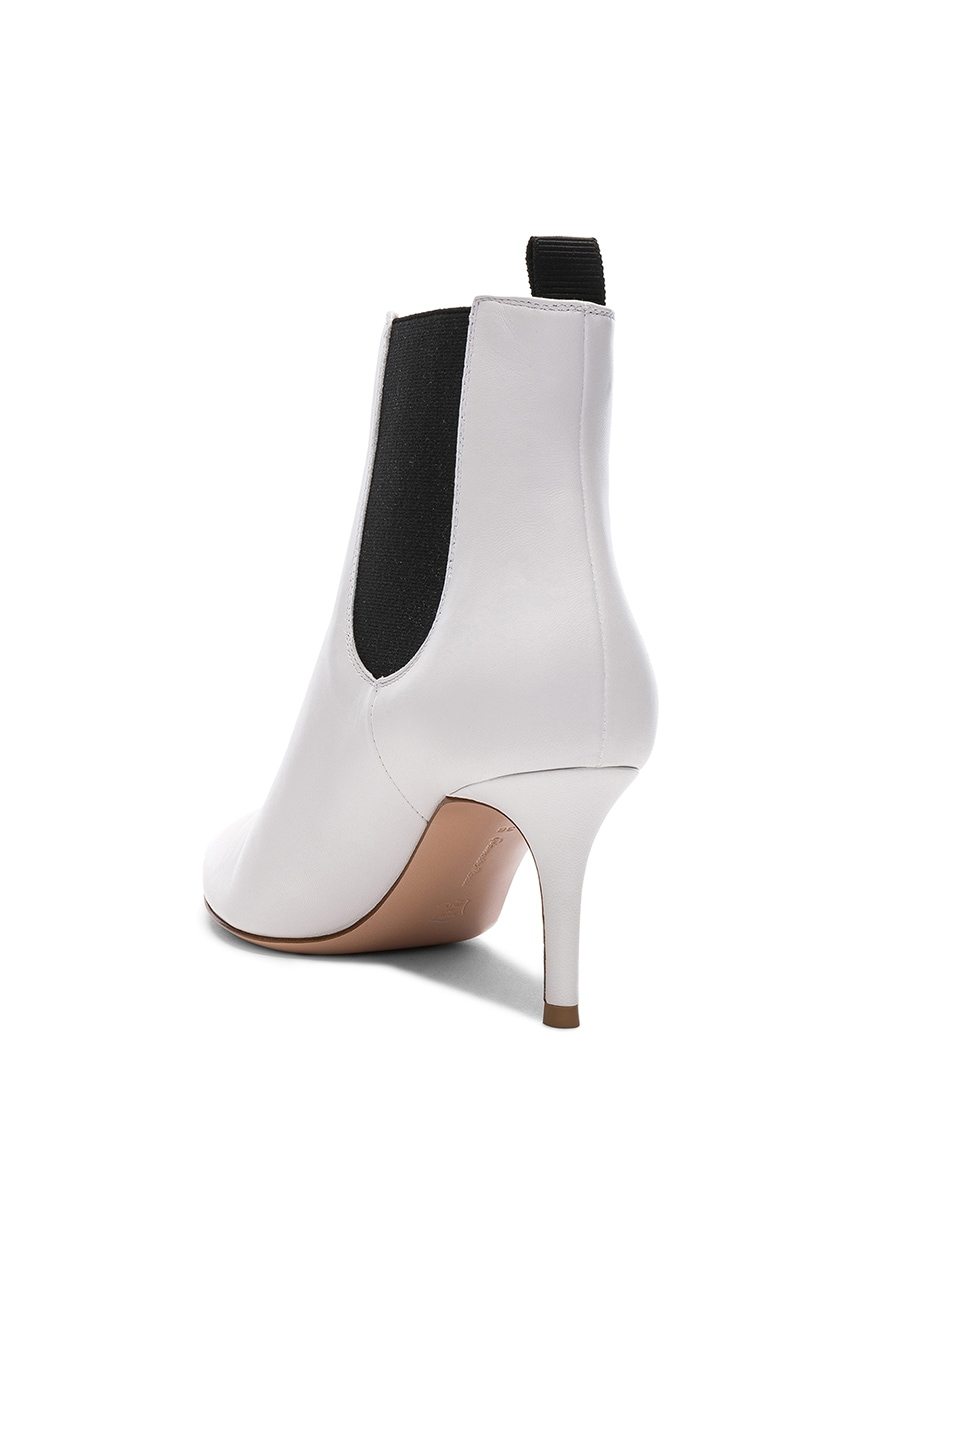 Image 3 of Gianvito Rossi for FWRD Leather Evan Stiletto Ankle Boots in White & Black